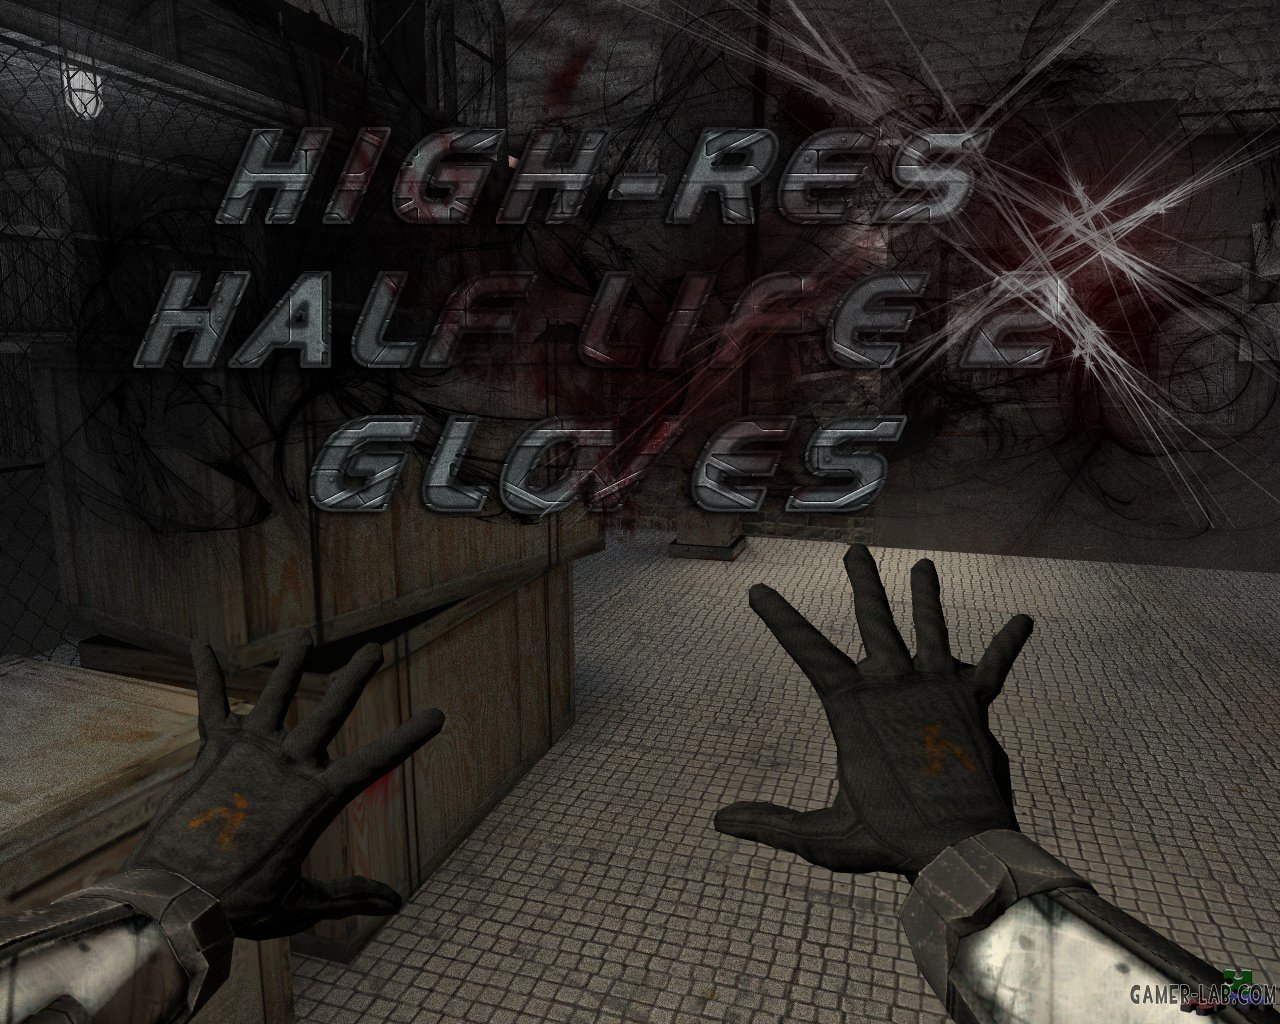 high-res half life 2 gloves